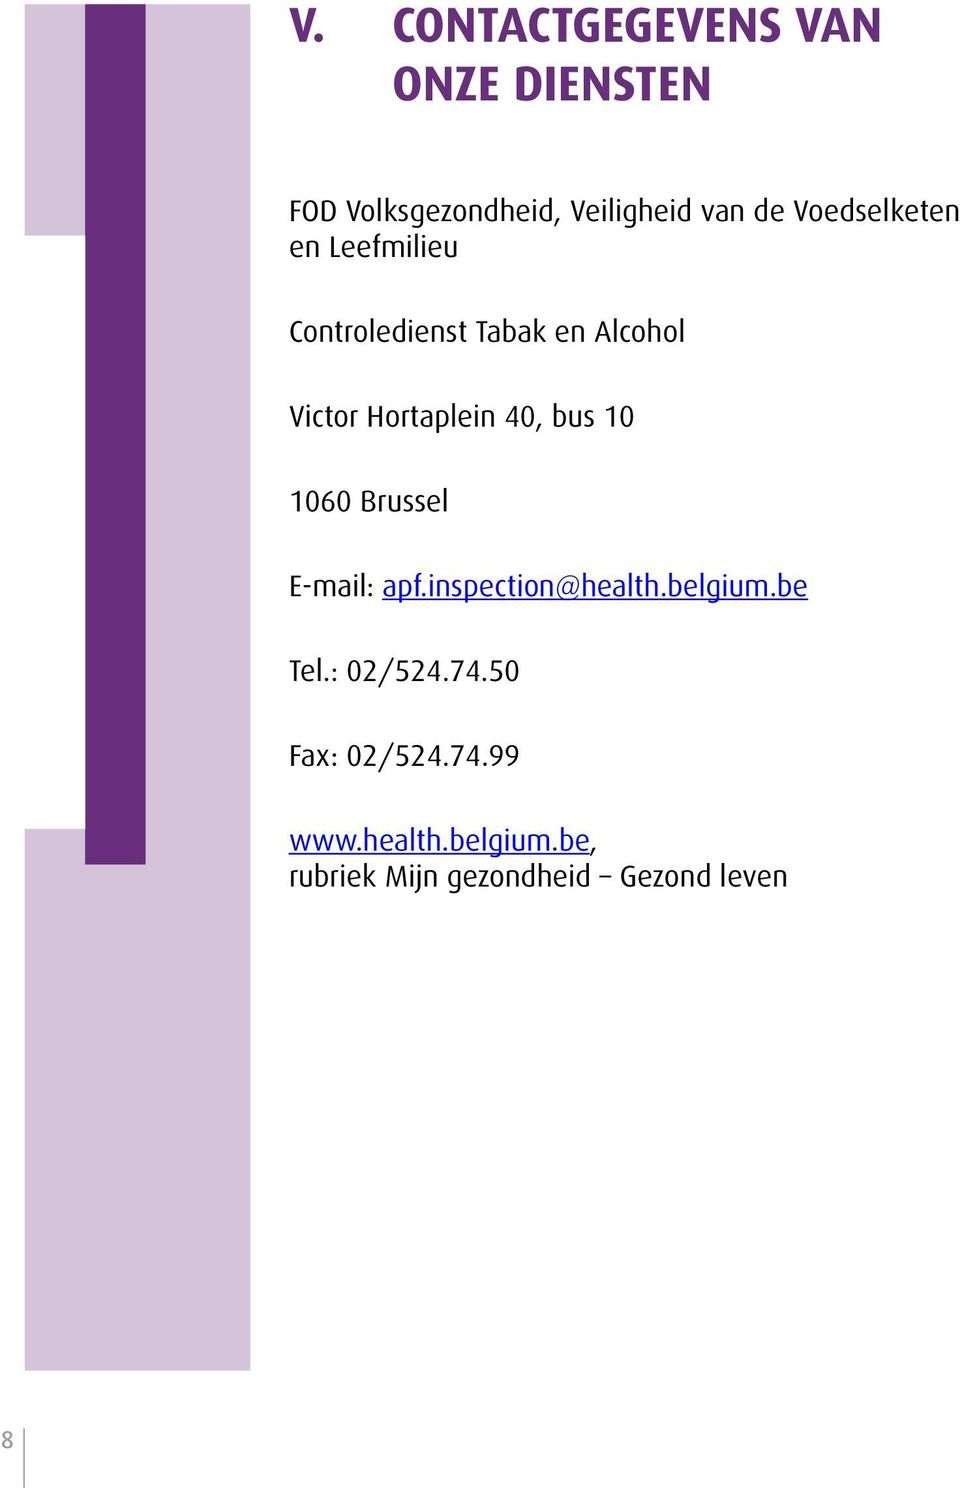 40, bus 10 1060 Brussel E-mail: apf.inspection@health.belgium.be Tel.: 02/524.